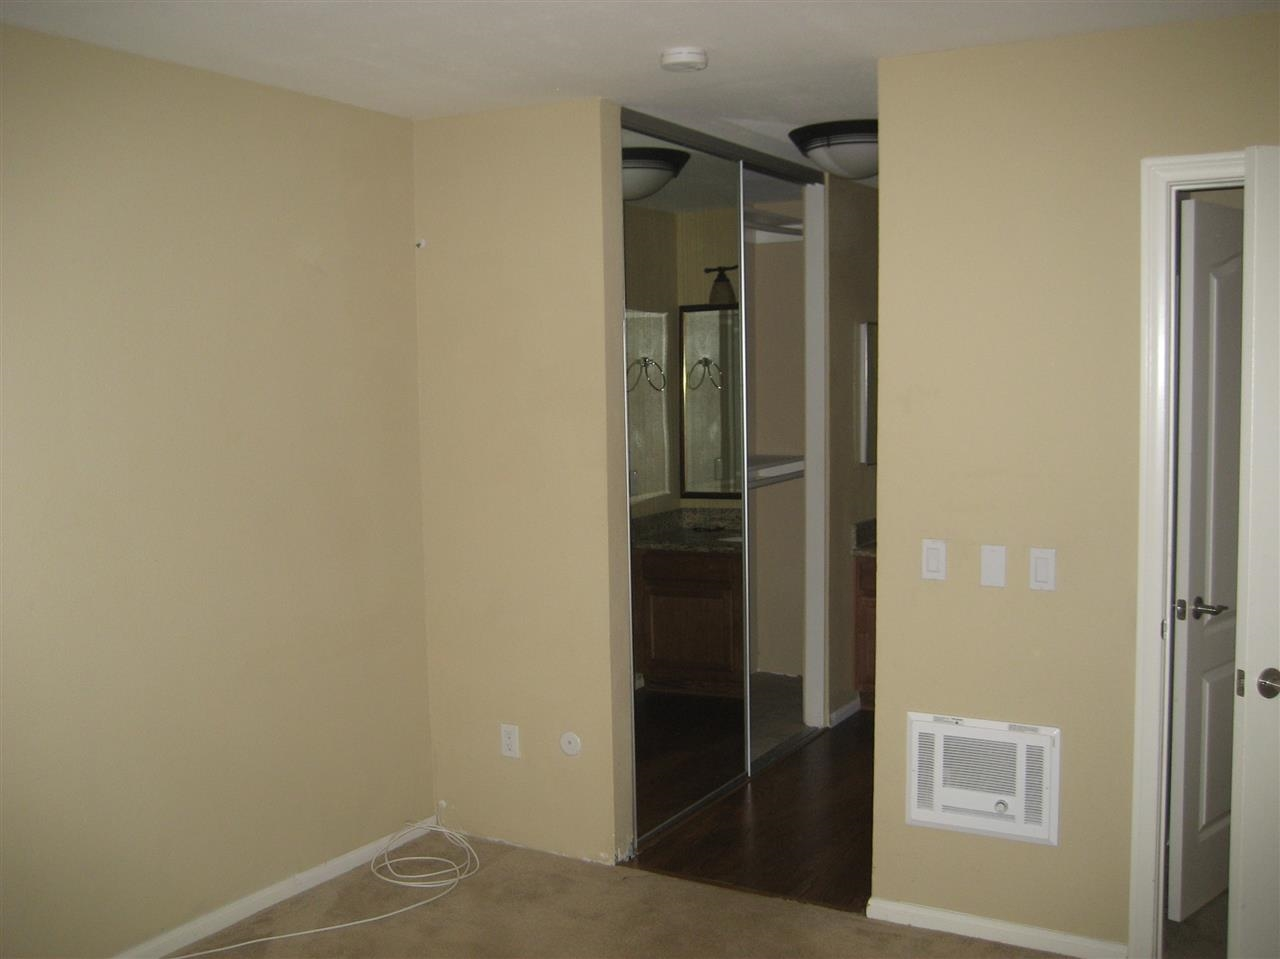 Photo 10: DEL CERRO Condo for sale : 2 bedrooms : 7767 Margerum Ave #151 in San Diego